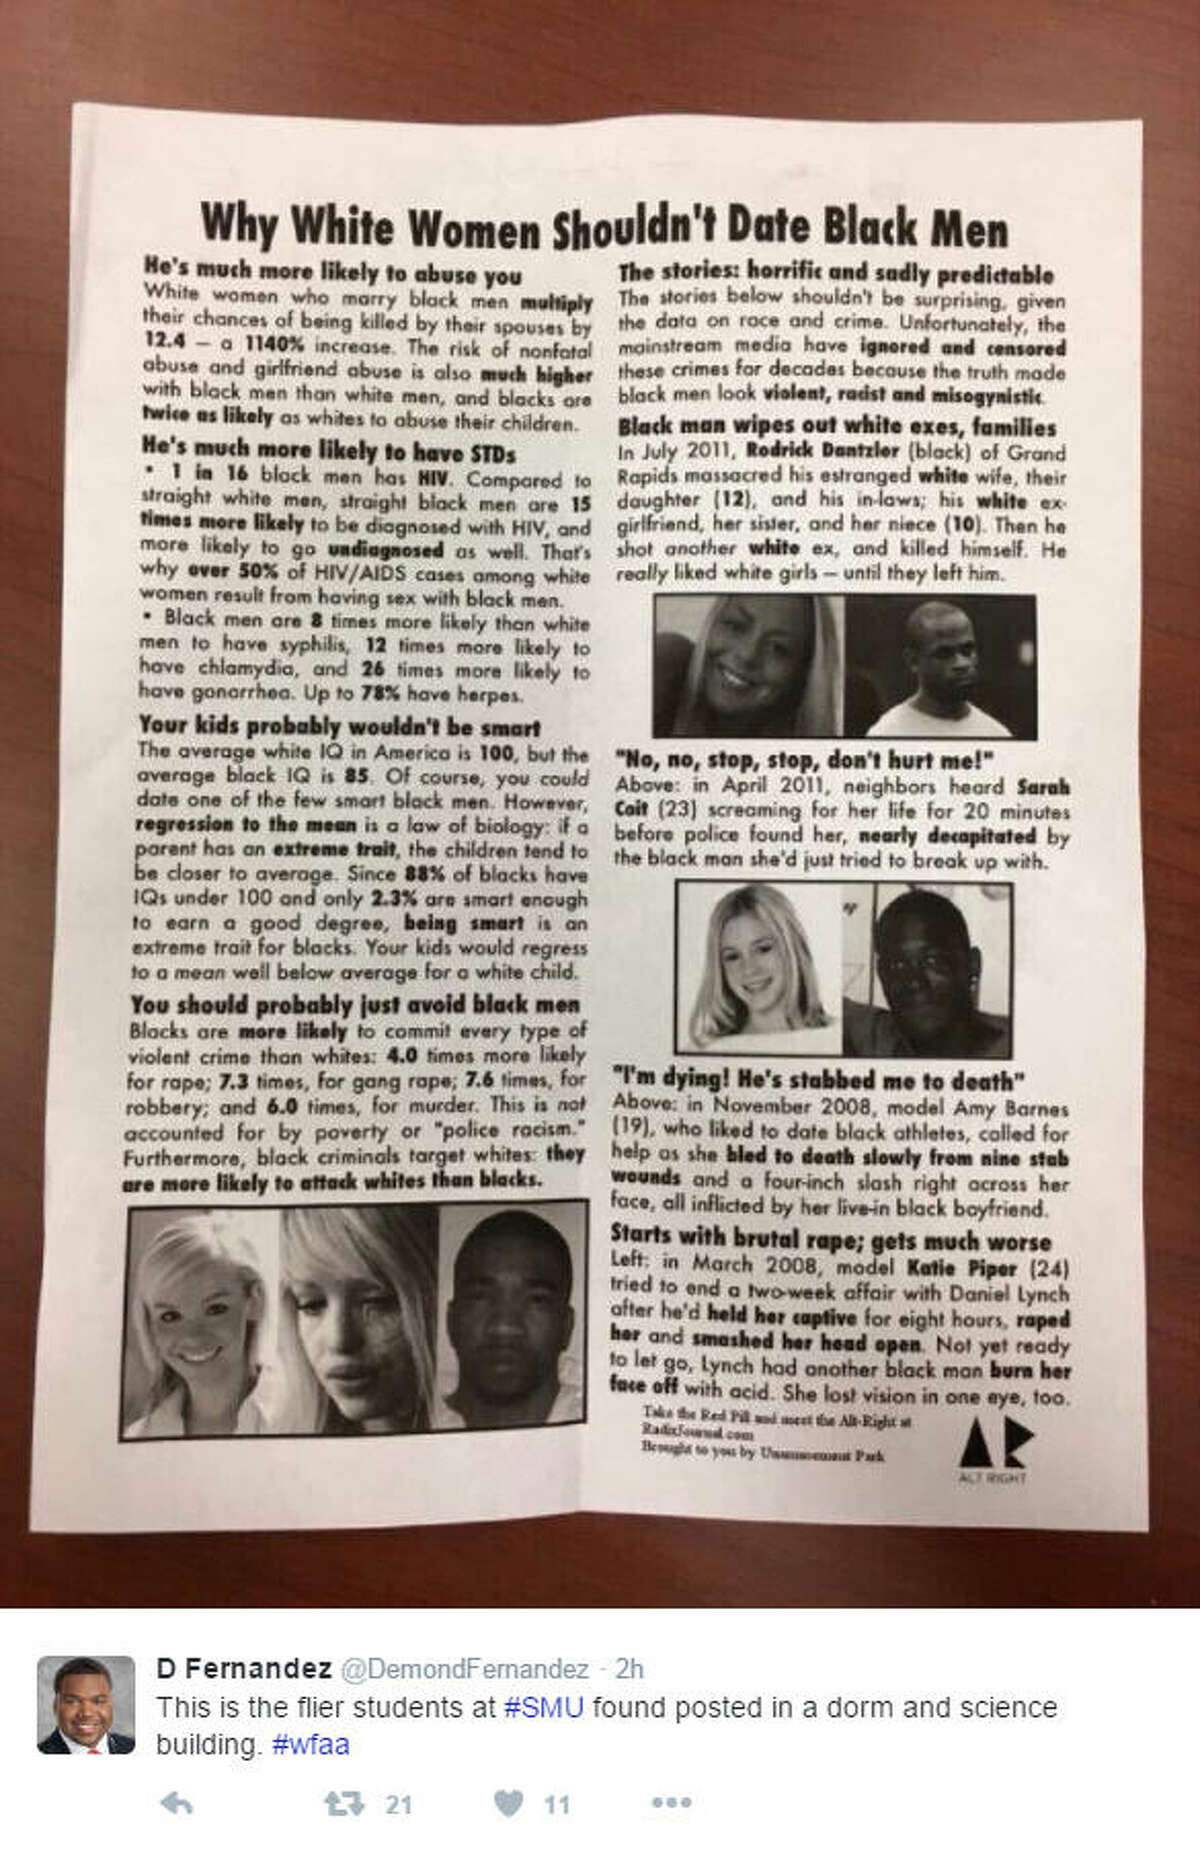 """Fliers titled """"Why white women shouldn't date black men"""" were found in dorms and the science building of the Southern Methodist University campus. Source: Twitter"""